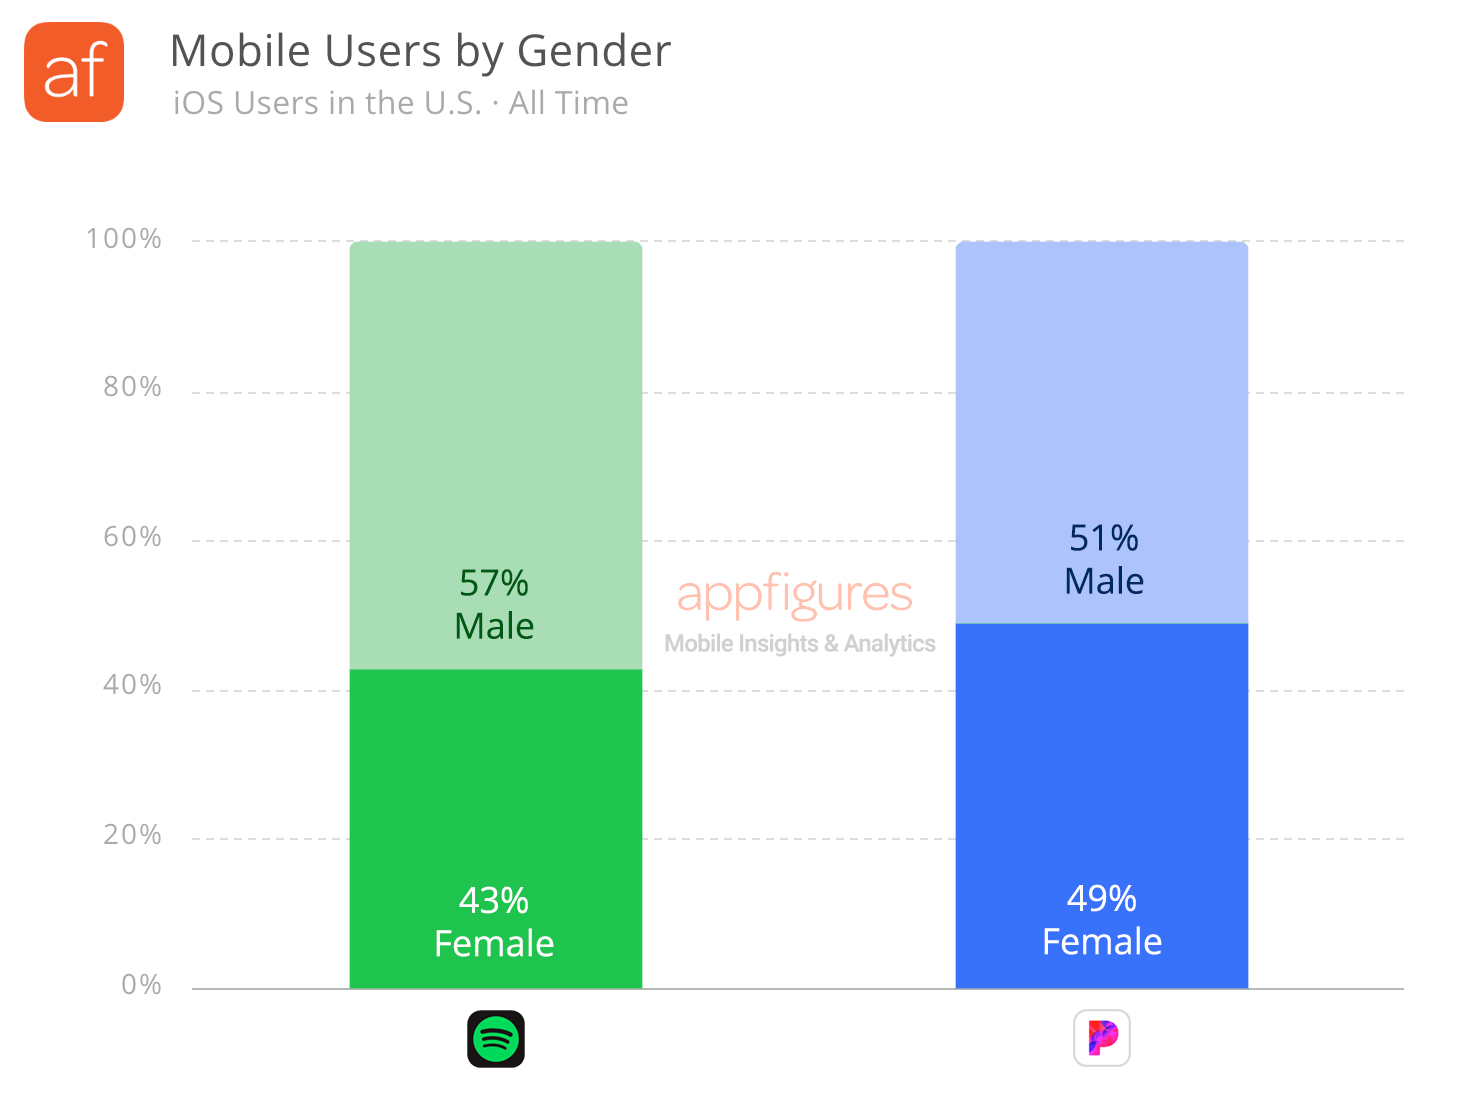 Mobile users by gender for Spotify and Pandora